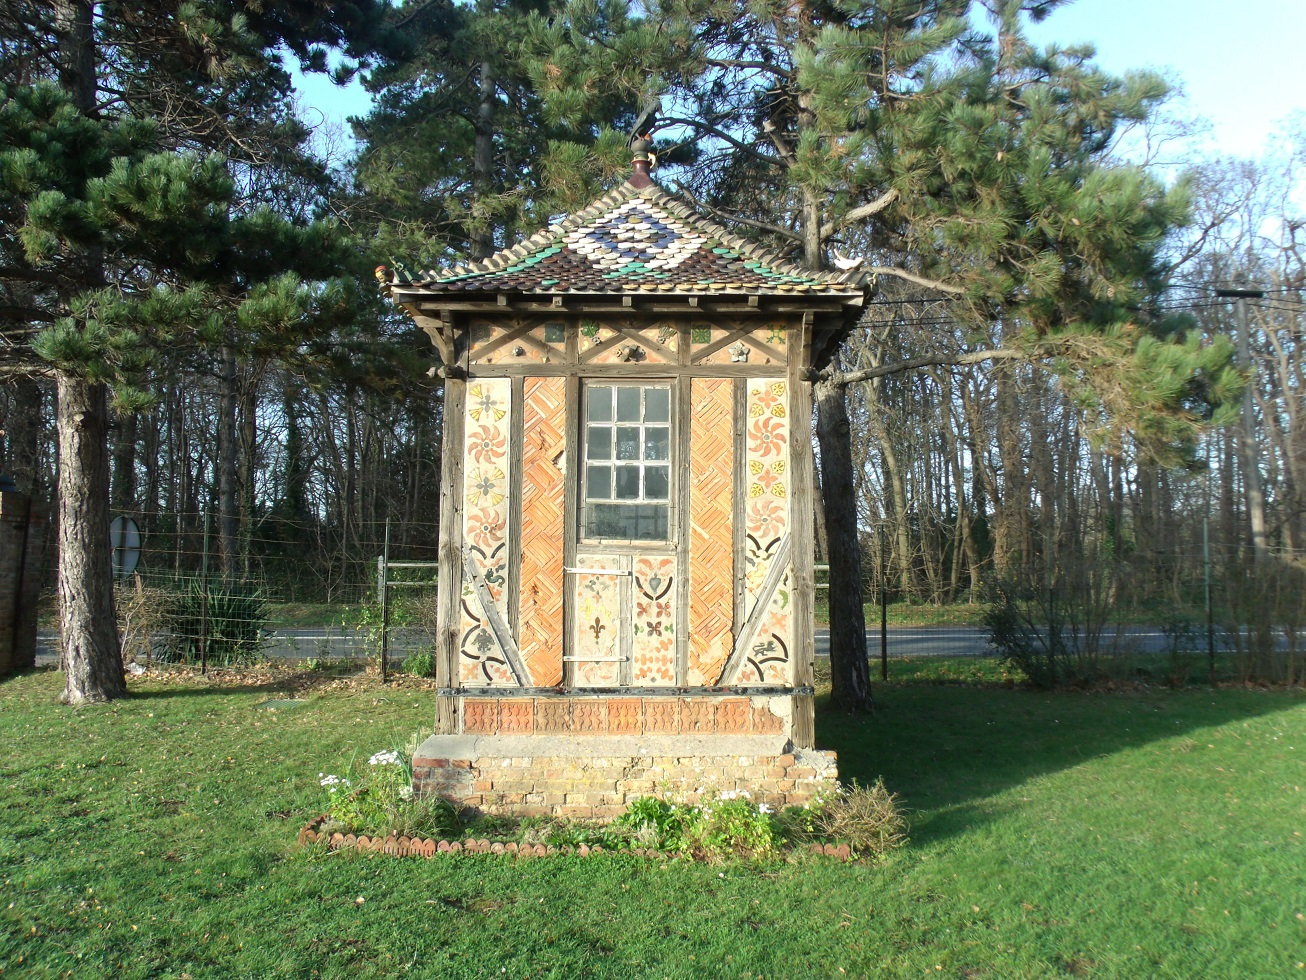 In the grounds of Poterie du Mesnil de Bavent